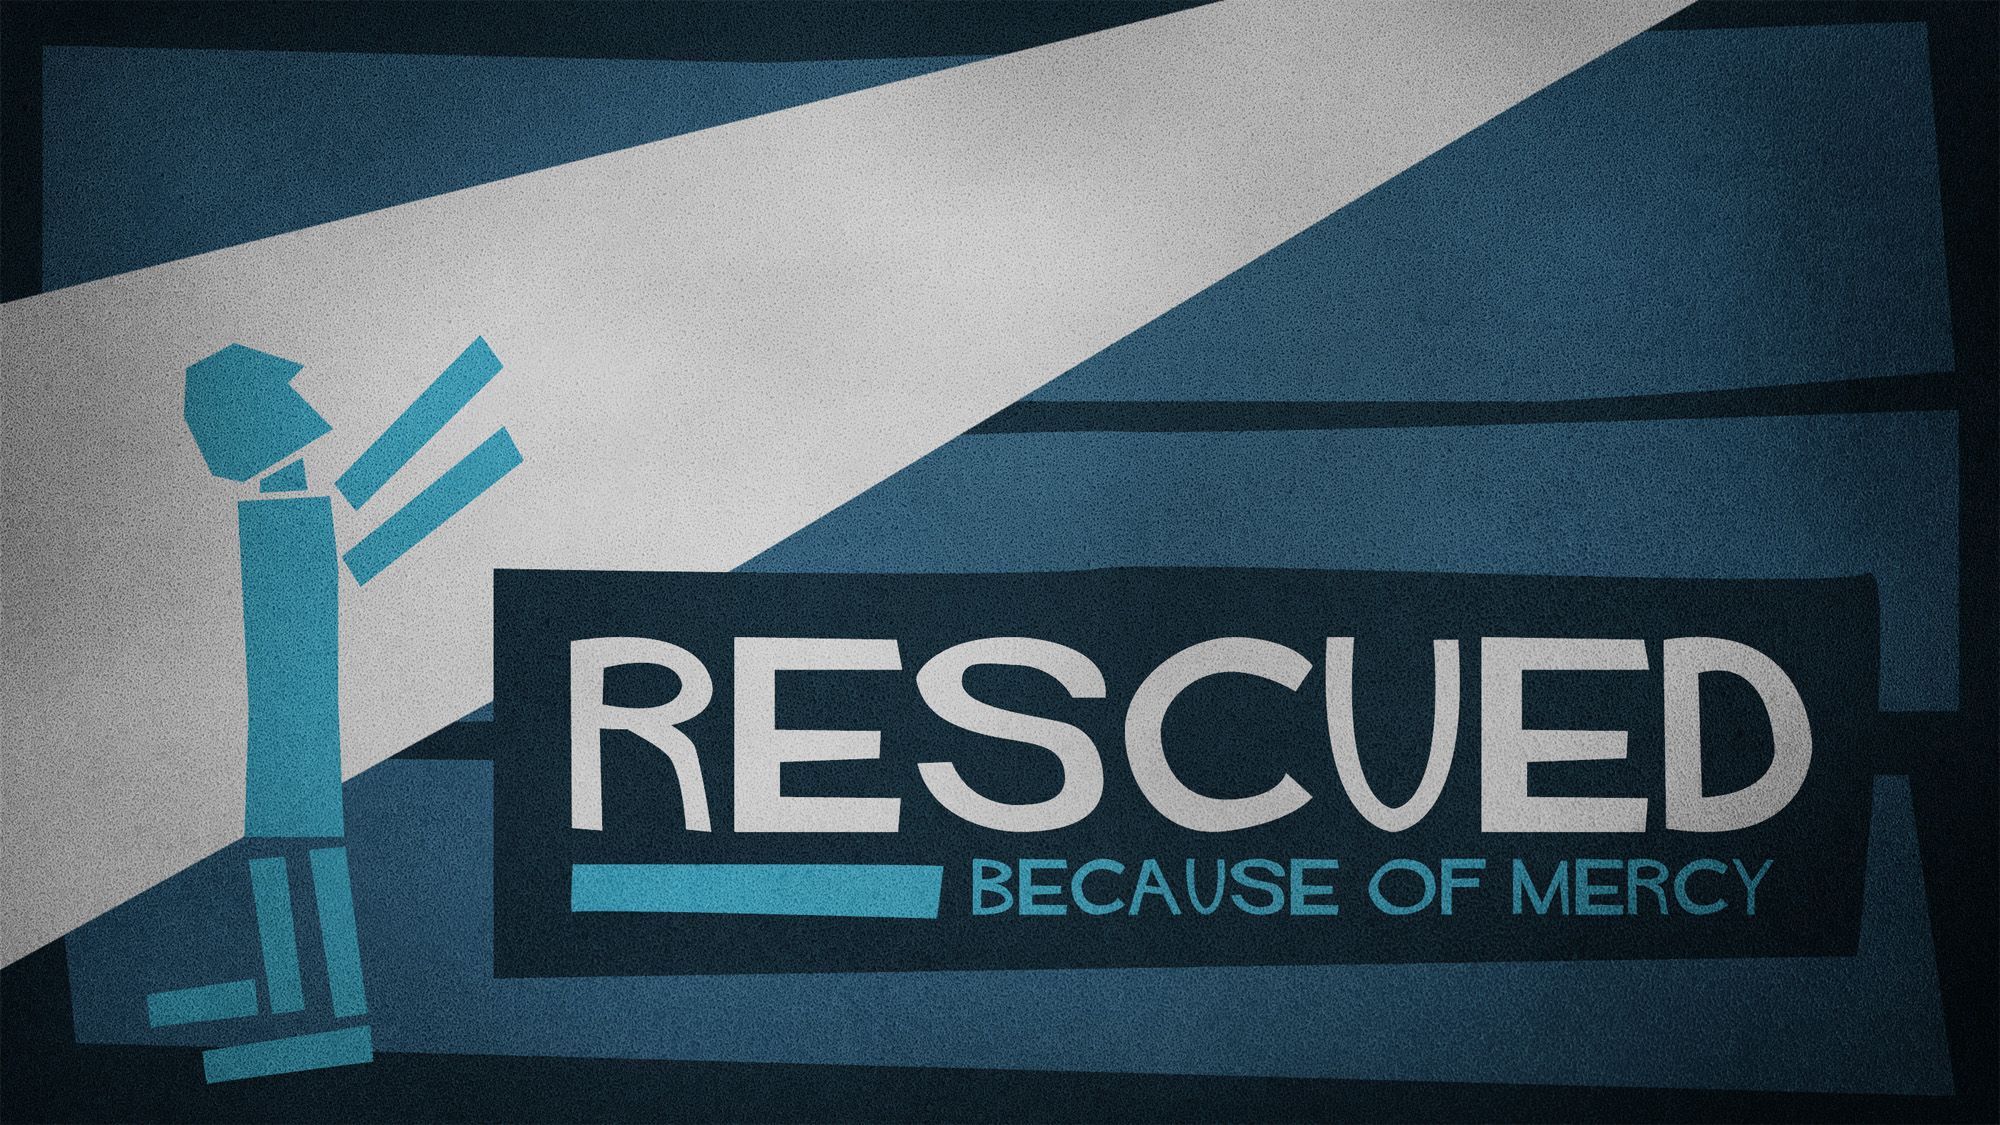 Rescued-Because-Of-Mercy_WIDE-TITLE-1.jpg